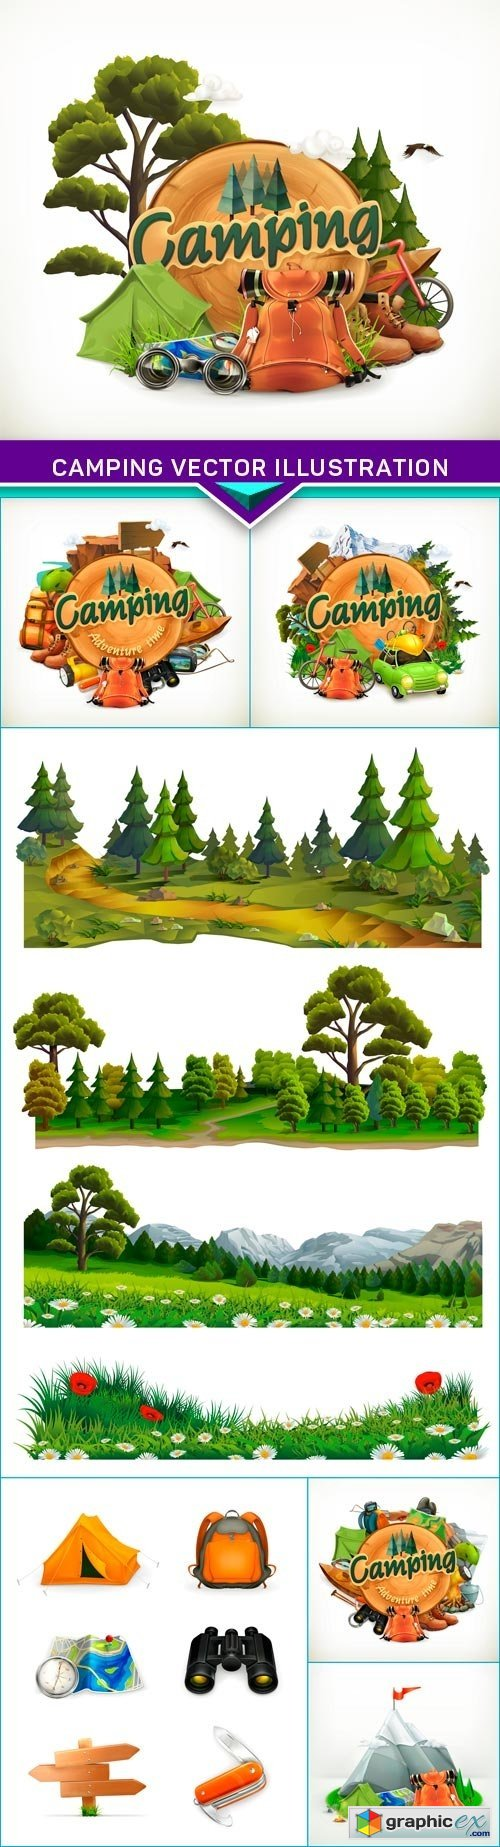 Camping vector illustration 7x EPS